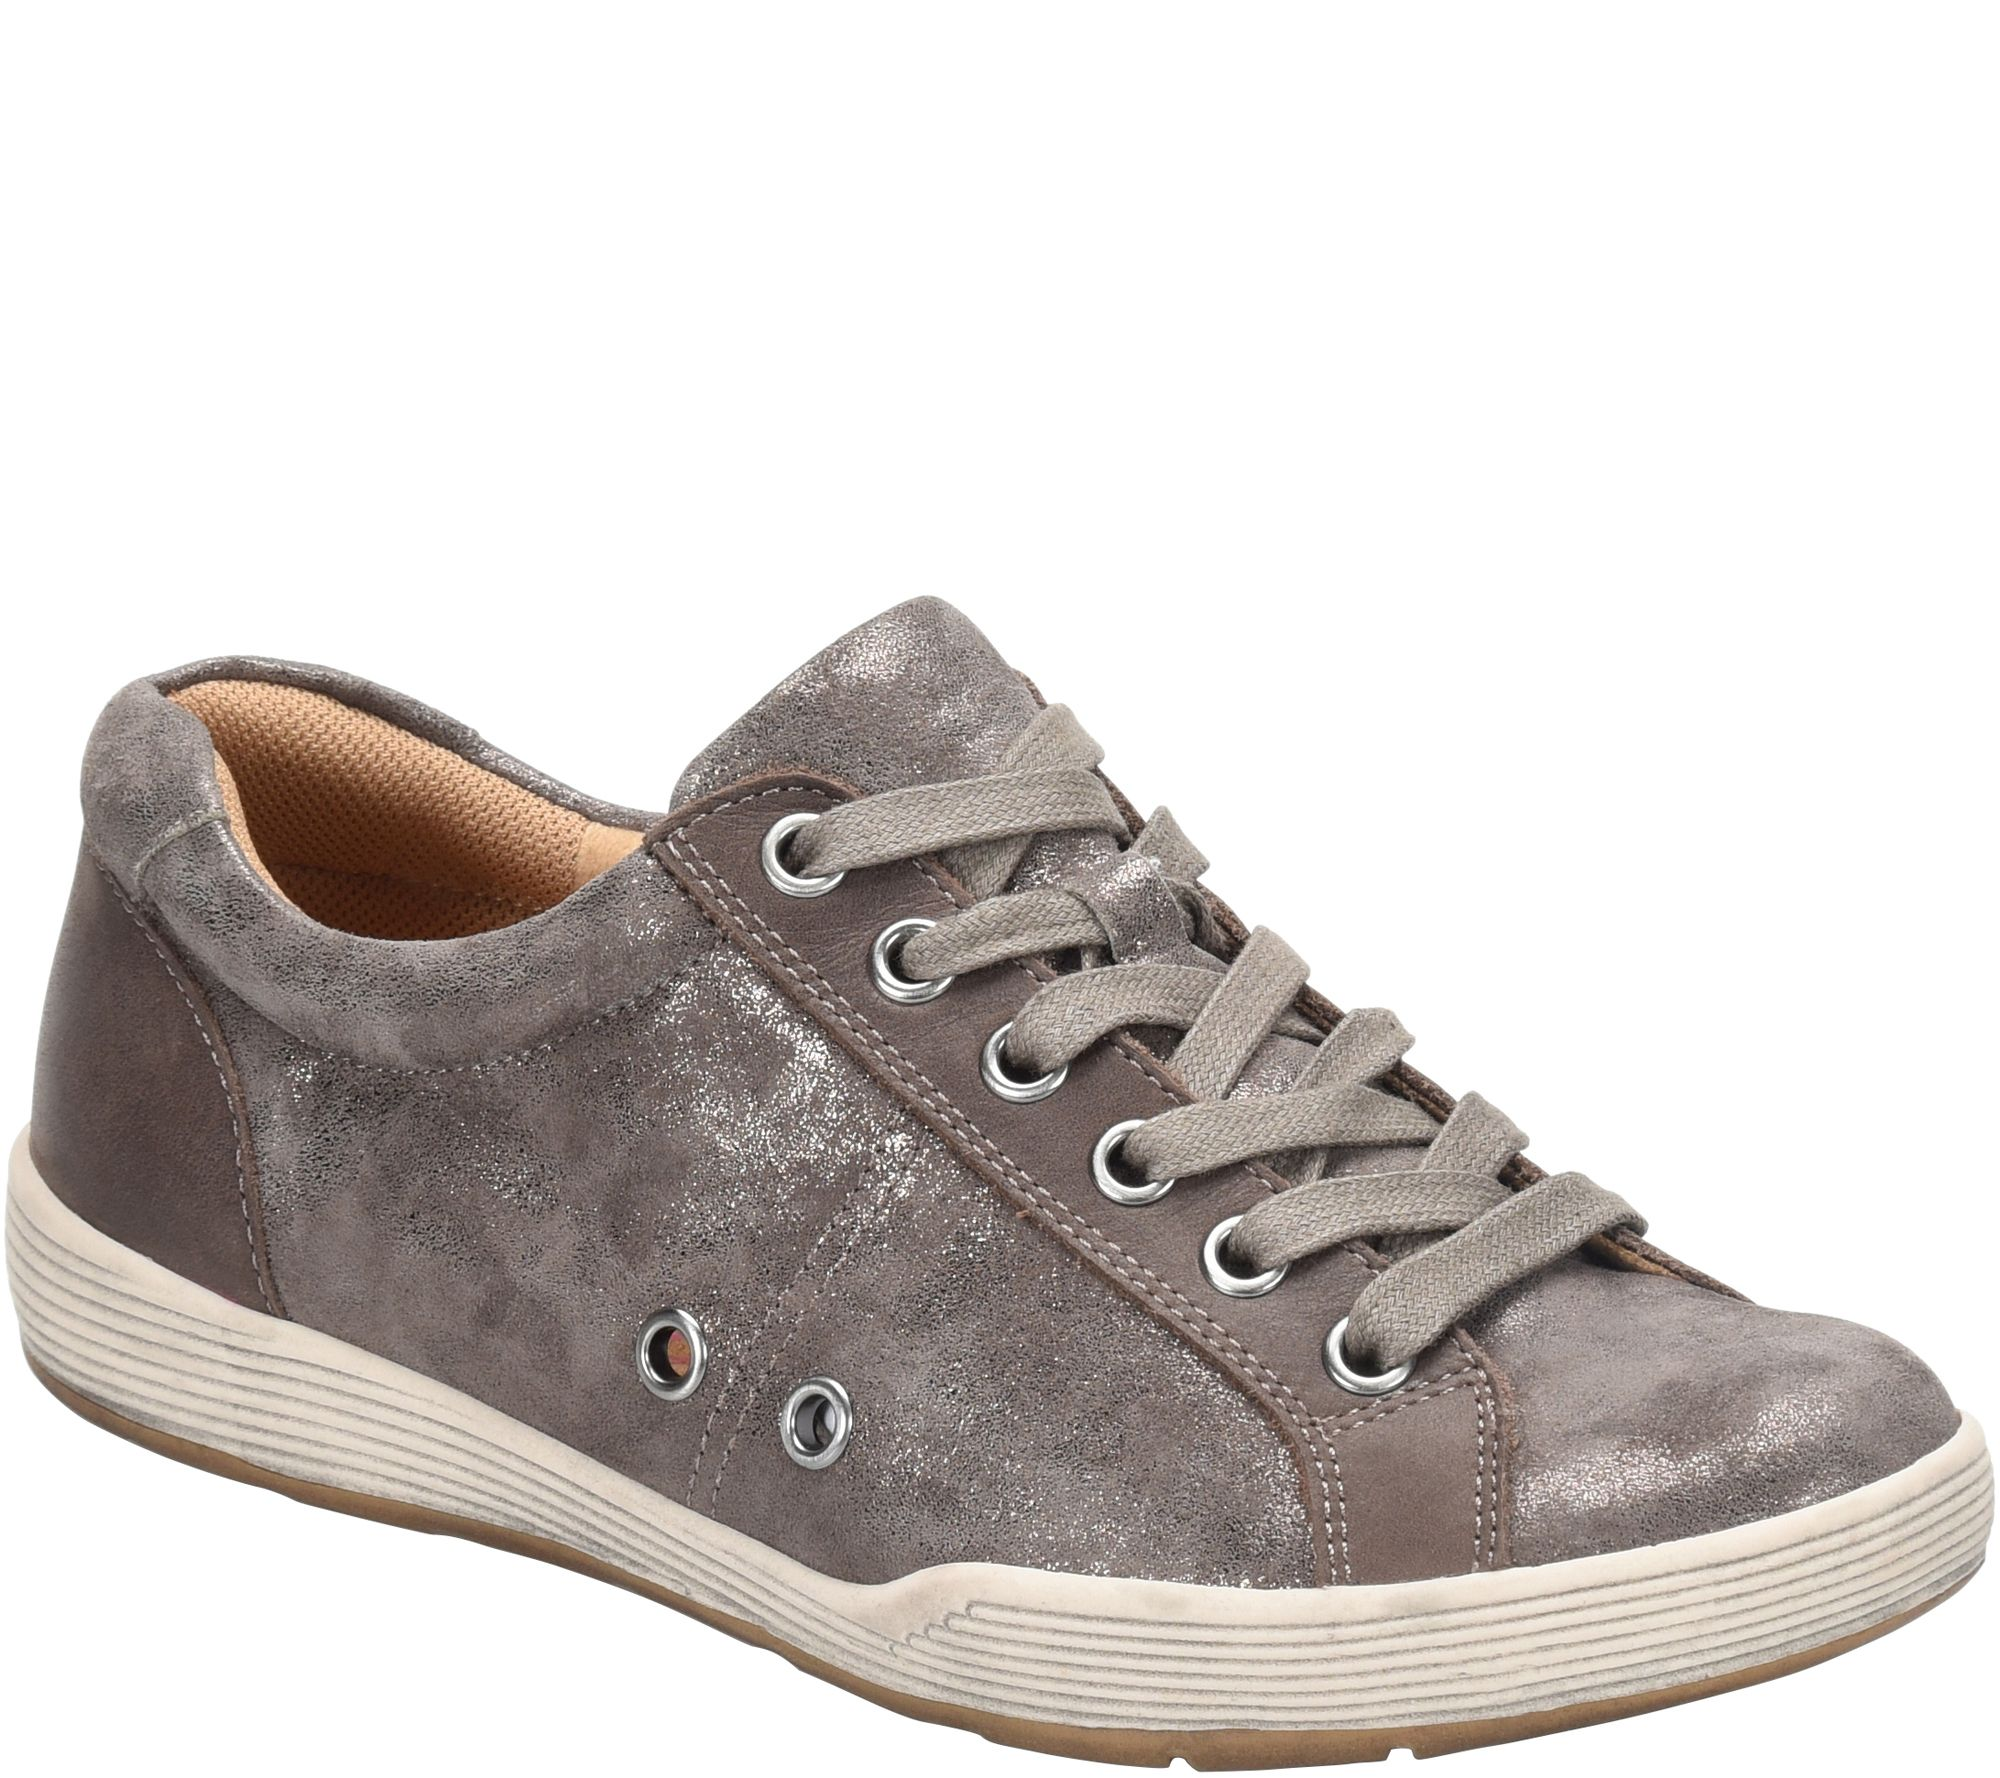 Lyons Sneakers by Comfortiva® cheap Manchester cheap genuine sale with mastercard pay with visa for sale U9u1Ul